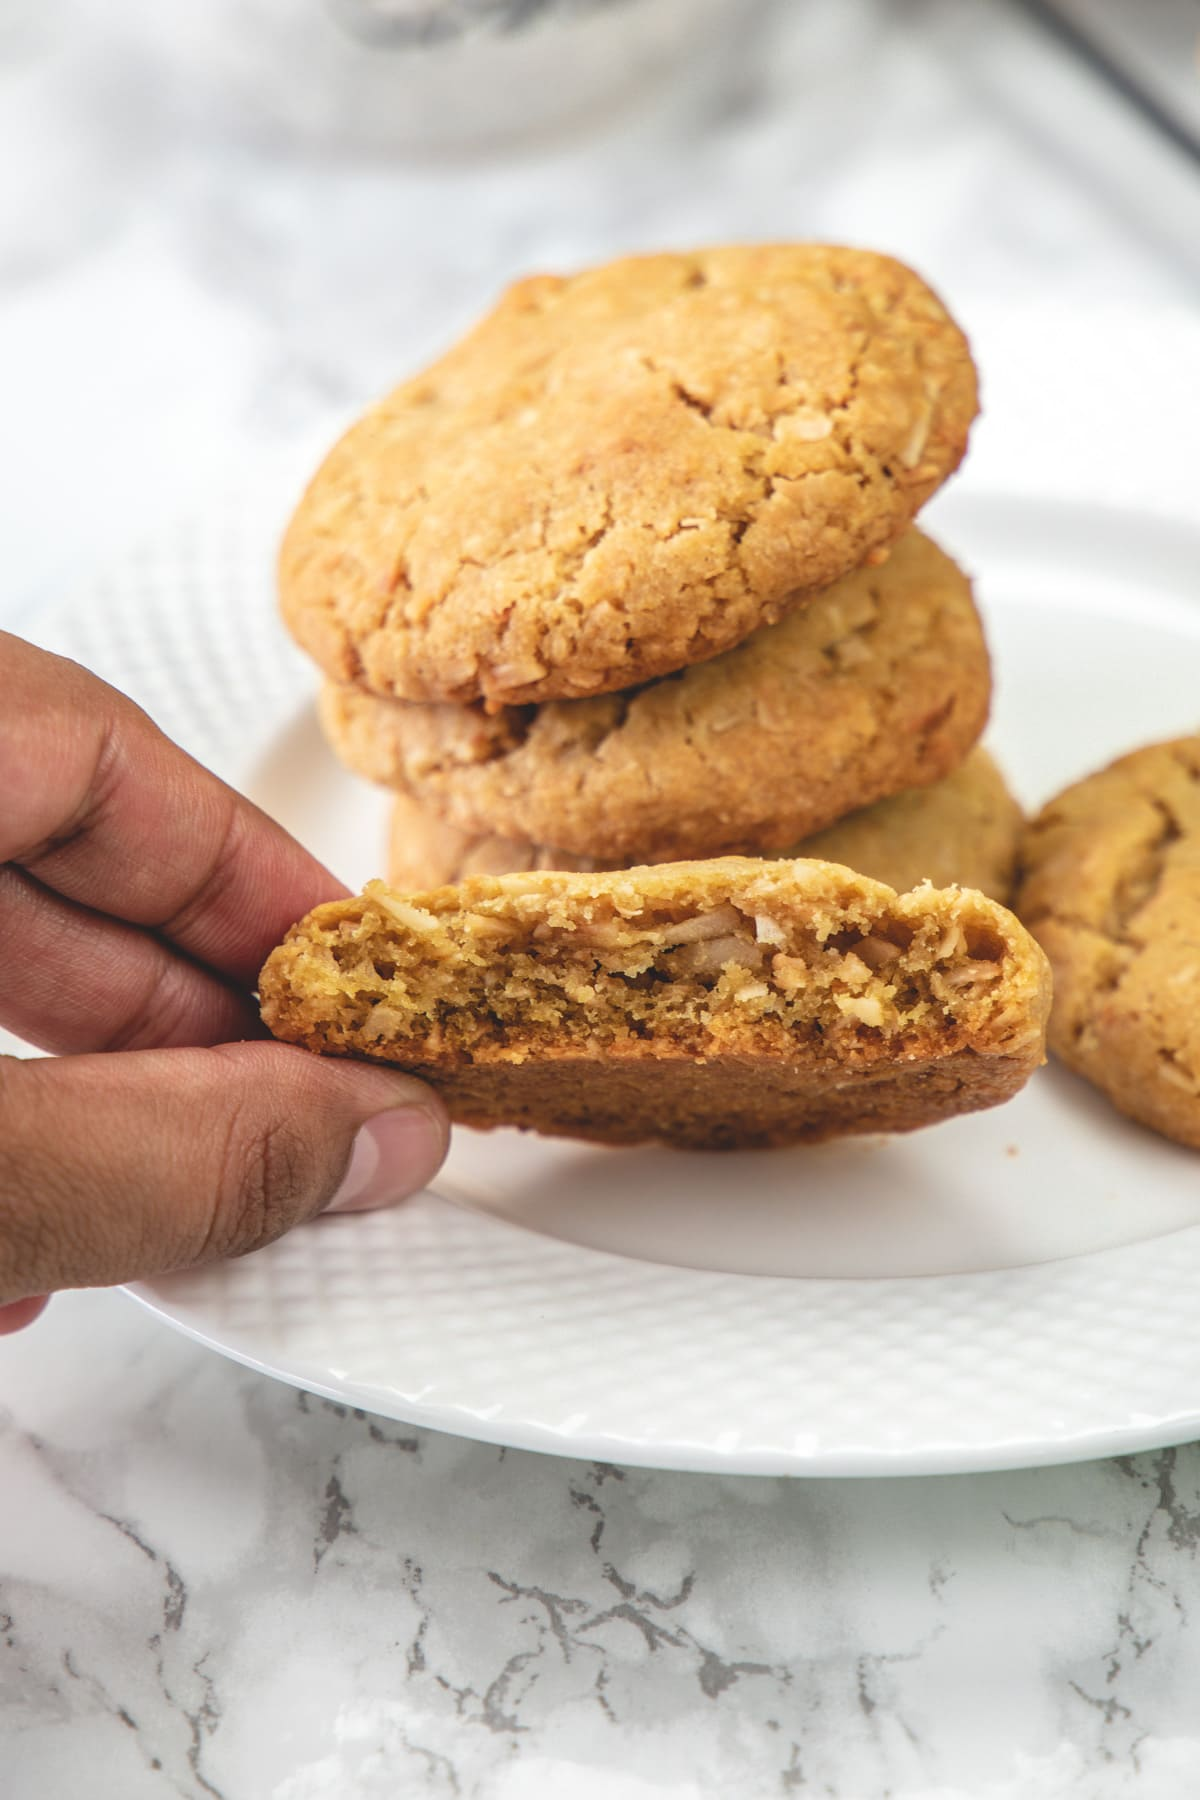 halved eggless coconut cookie to show inside texture with a stack of cookies behind.